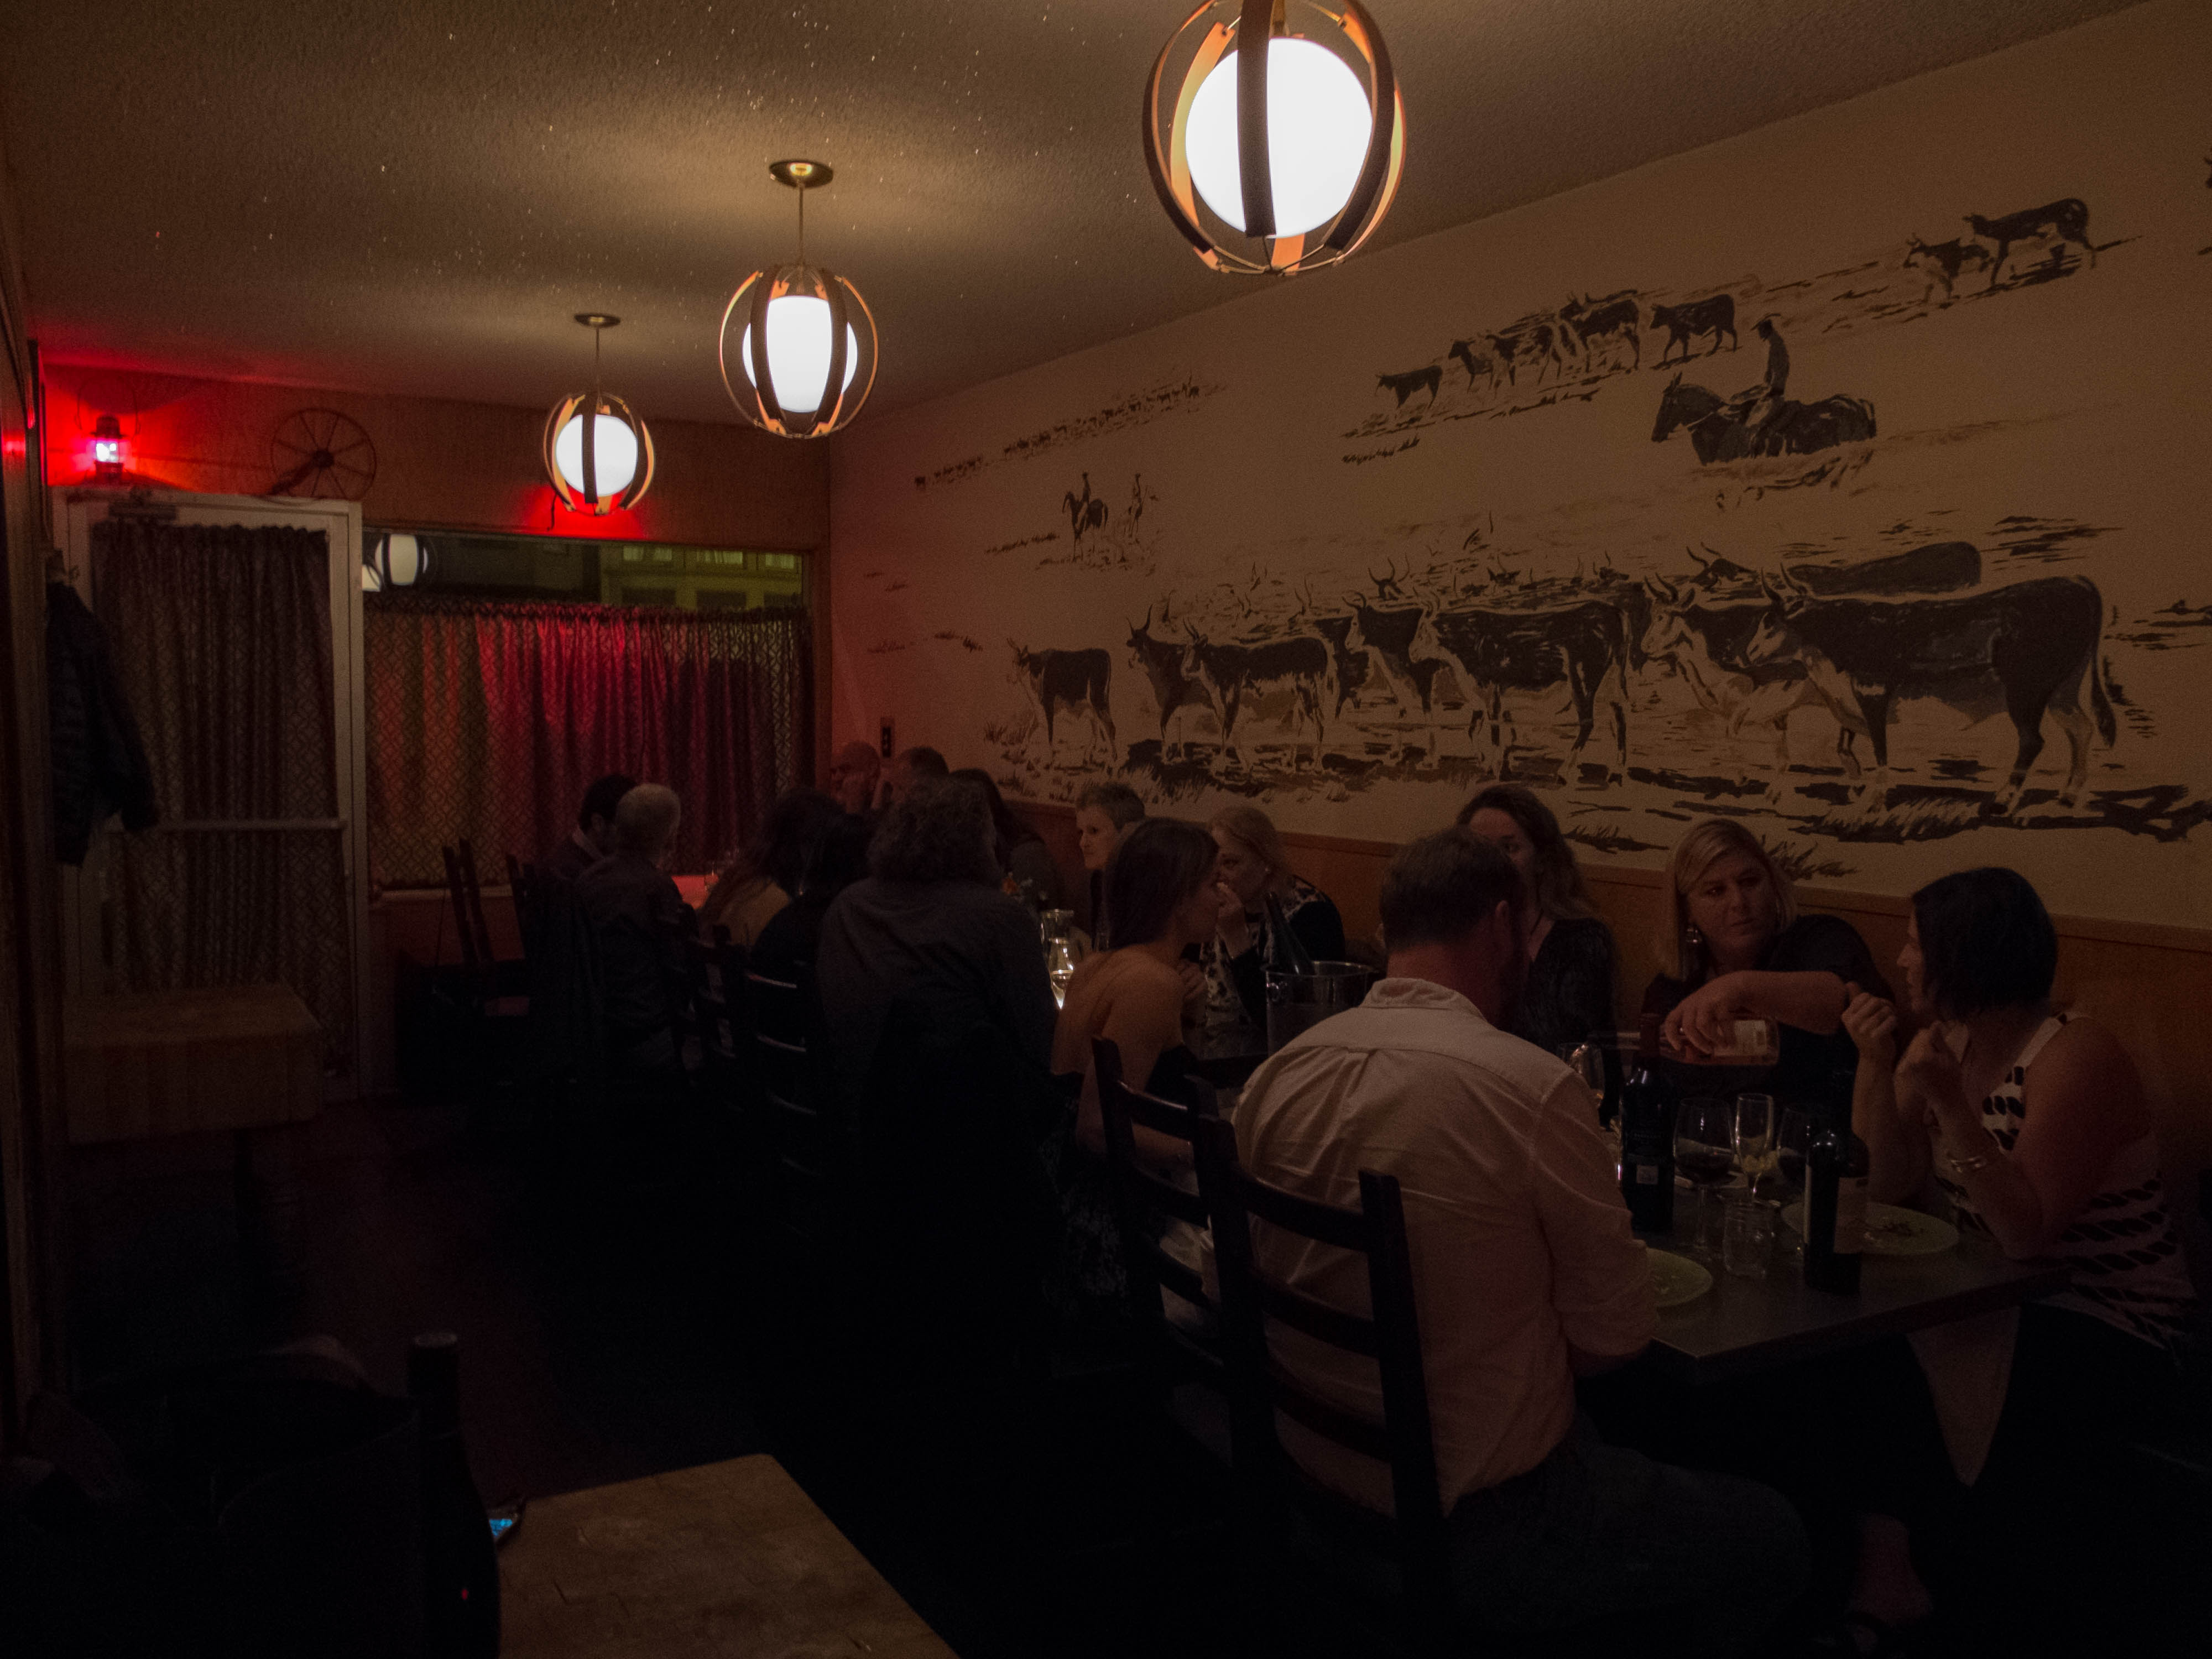 Dining With The Mob - The Liquor Store LLC